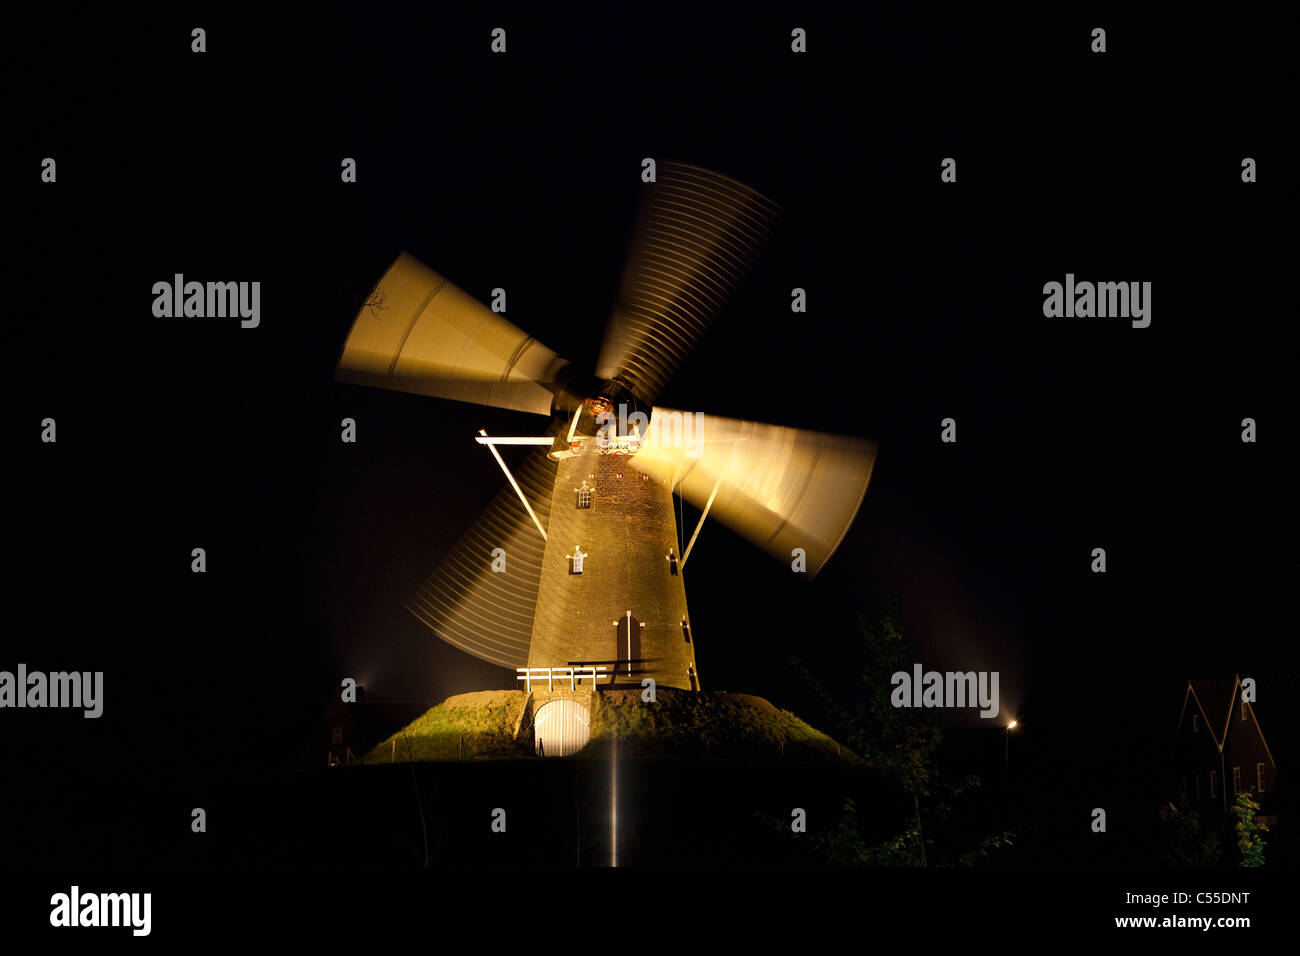 The Netherlands, Bredevoort, Windmill at night moving in floodlight. - Stock Image